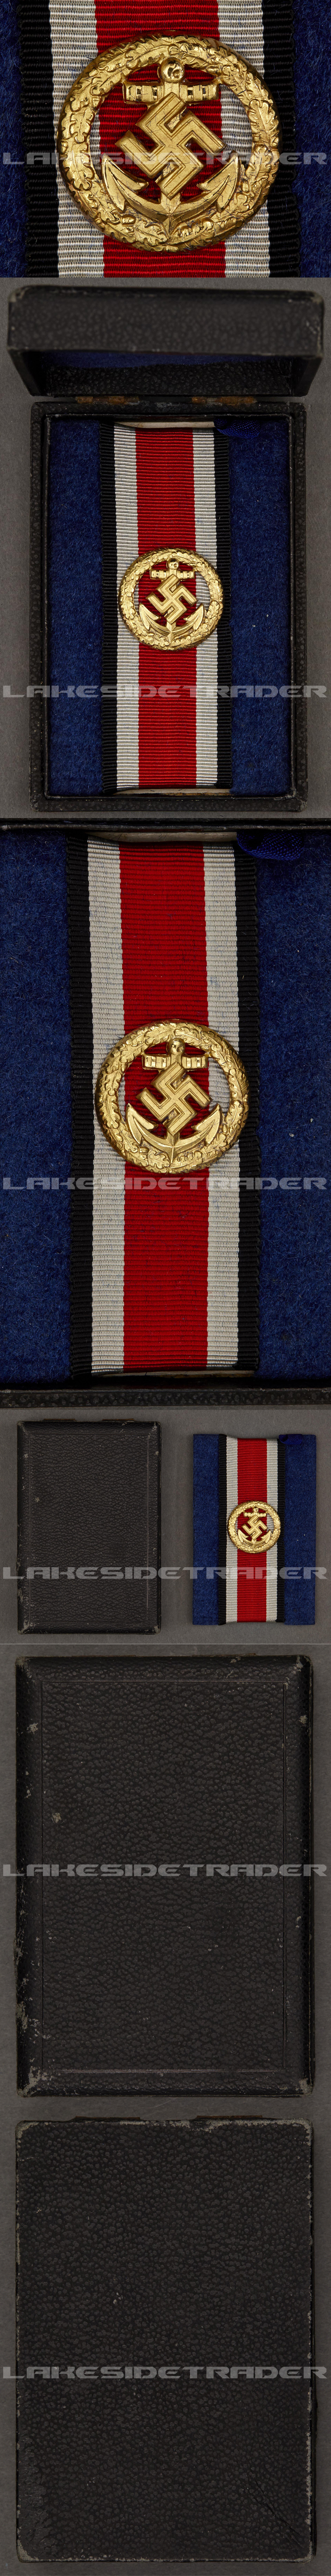 Cased Navy Honor Roll Clasp